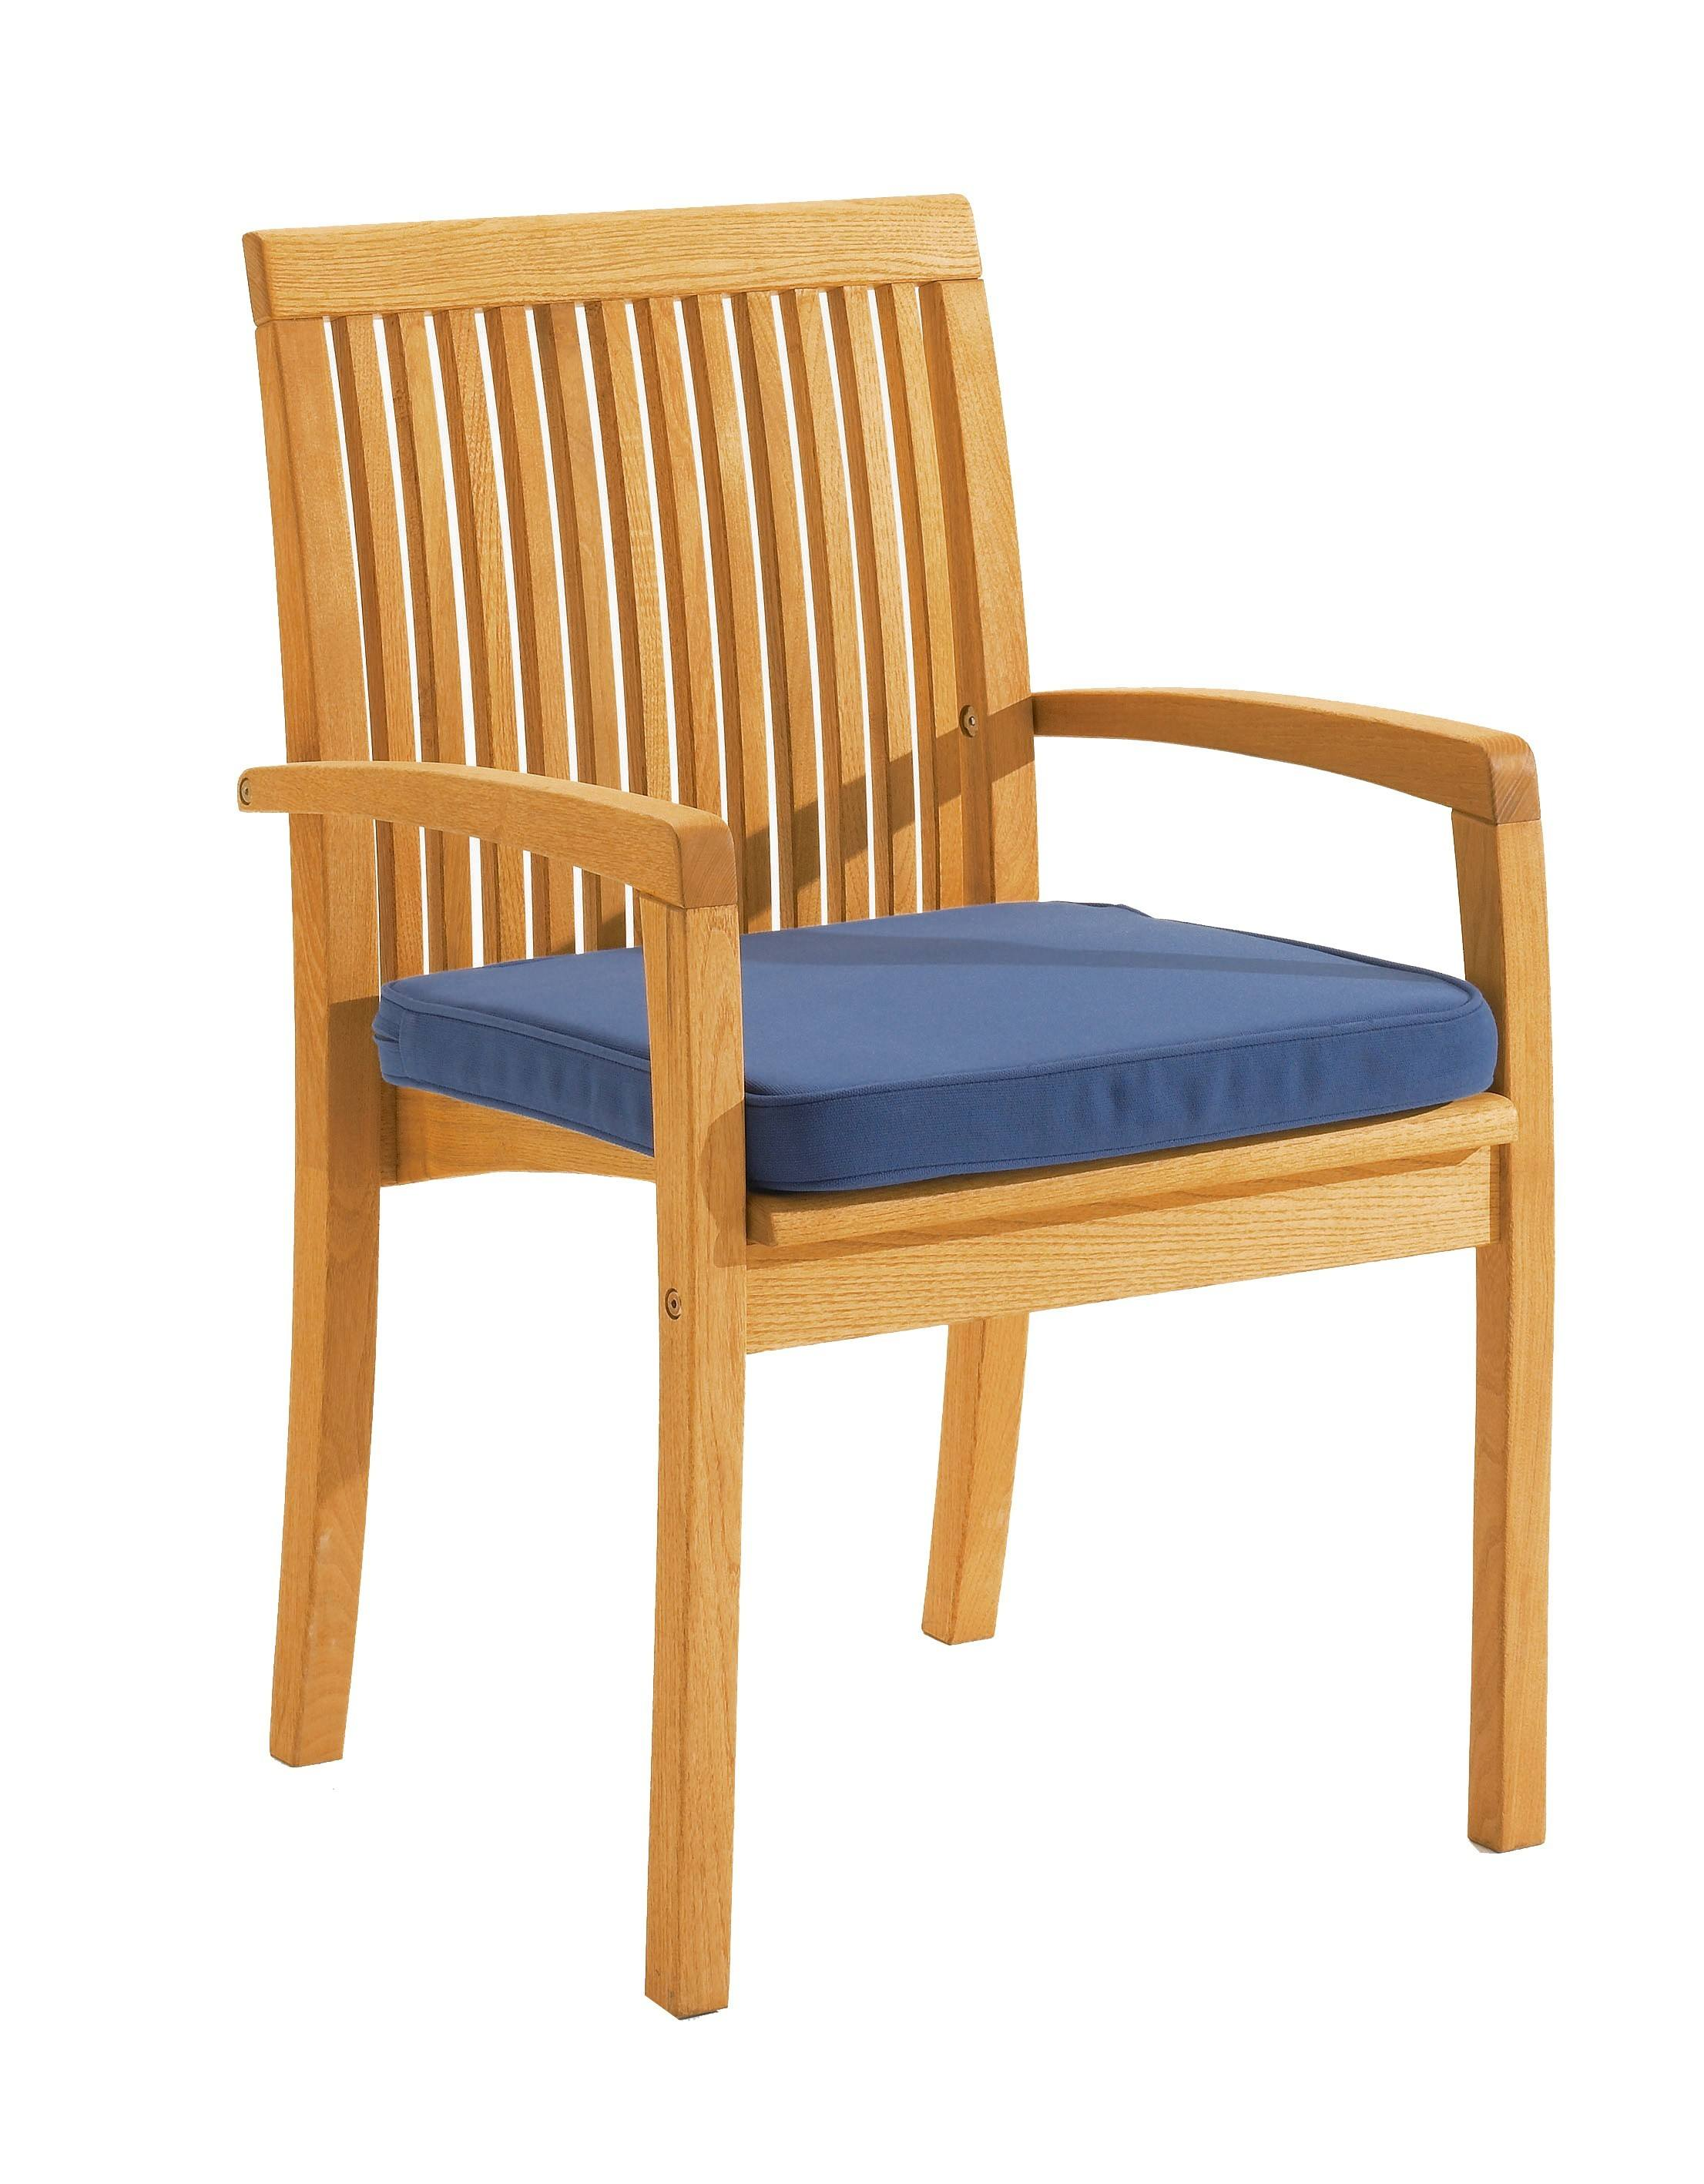 <p>Outdoor Furniture – Wooden Dining Collection Fuera.</p> <p> </p> <p>Fuera Furniture – Stylish, Elegant Armchair.</p> <p> </p> <p>Equally at home within an exquisite restaurant setting as it is on a garden patio or hotel terrace. Chairs are easy to stack and store away. Cushions available</p>